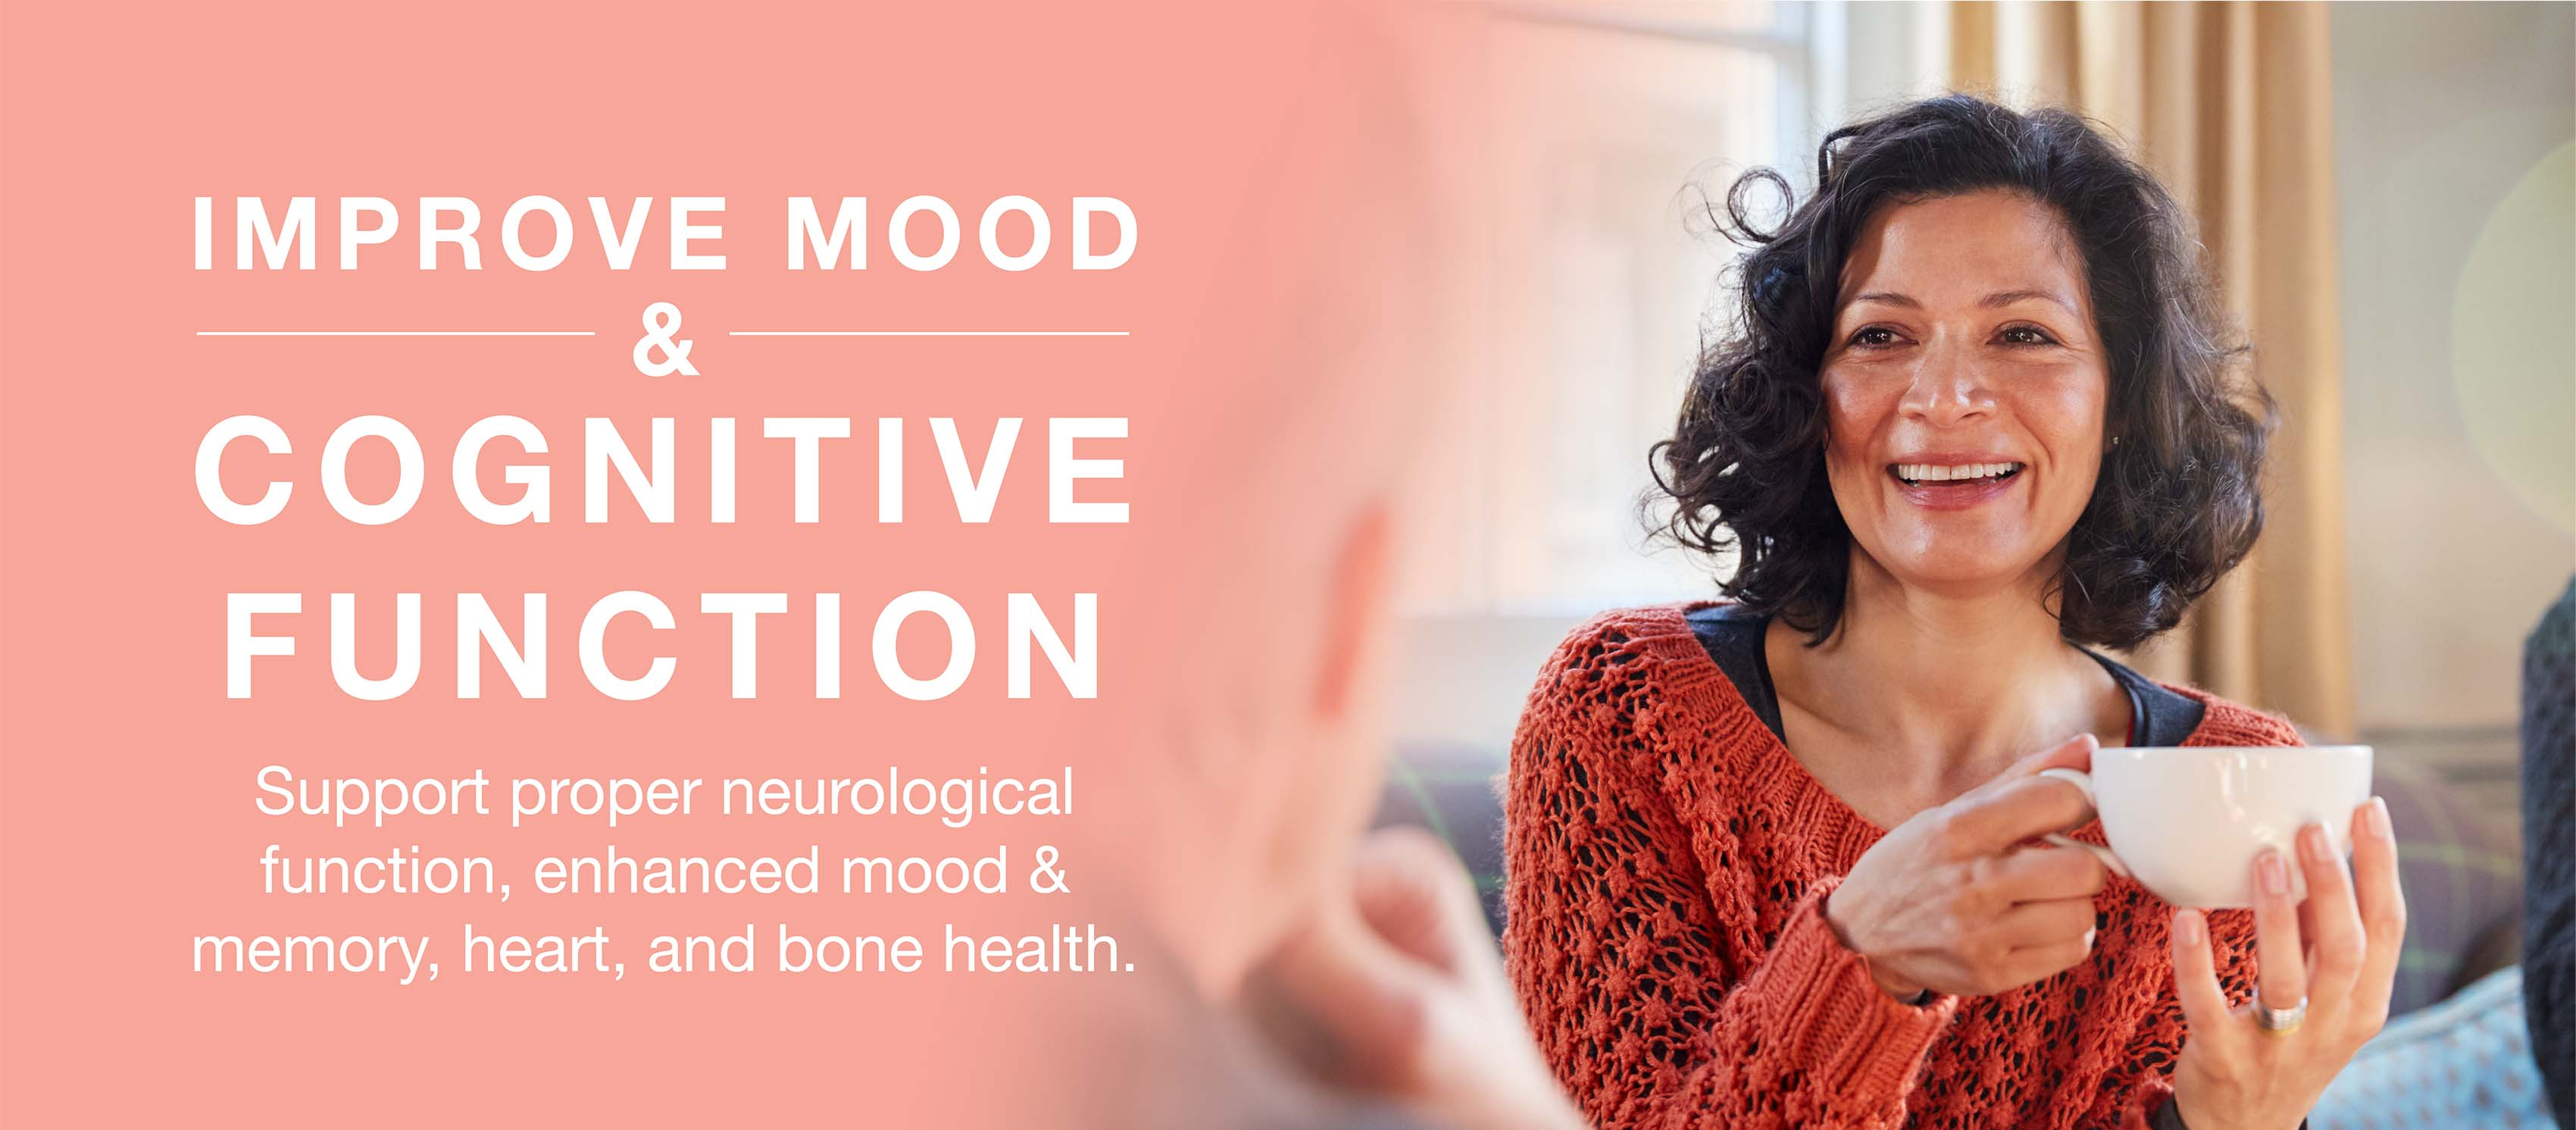 Improve mood & cognitive function by supporting proper neurological function, enhanced mood & memory, heart, and bone health.